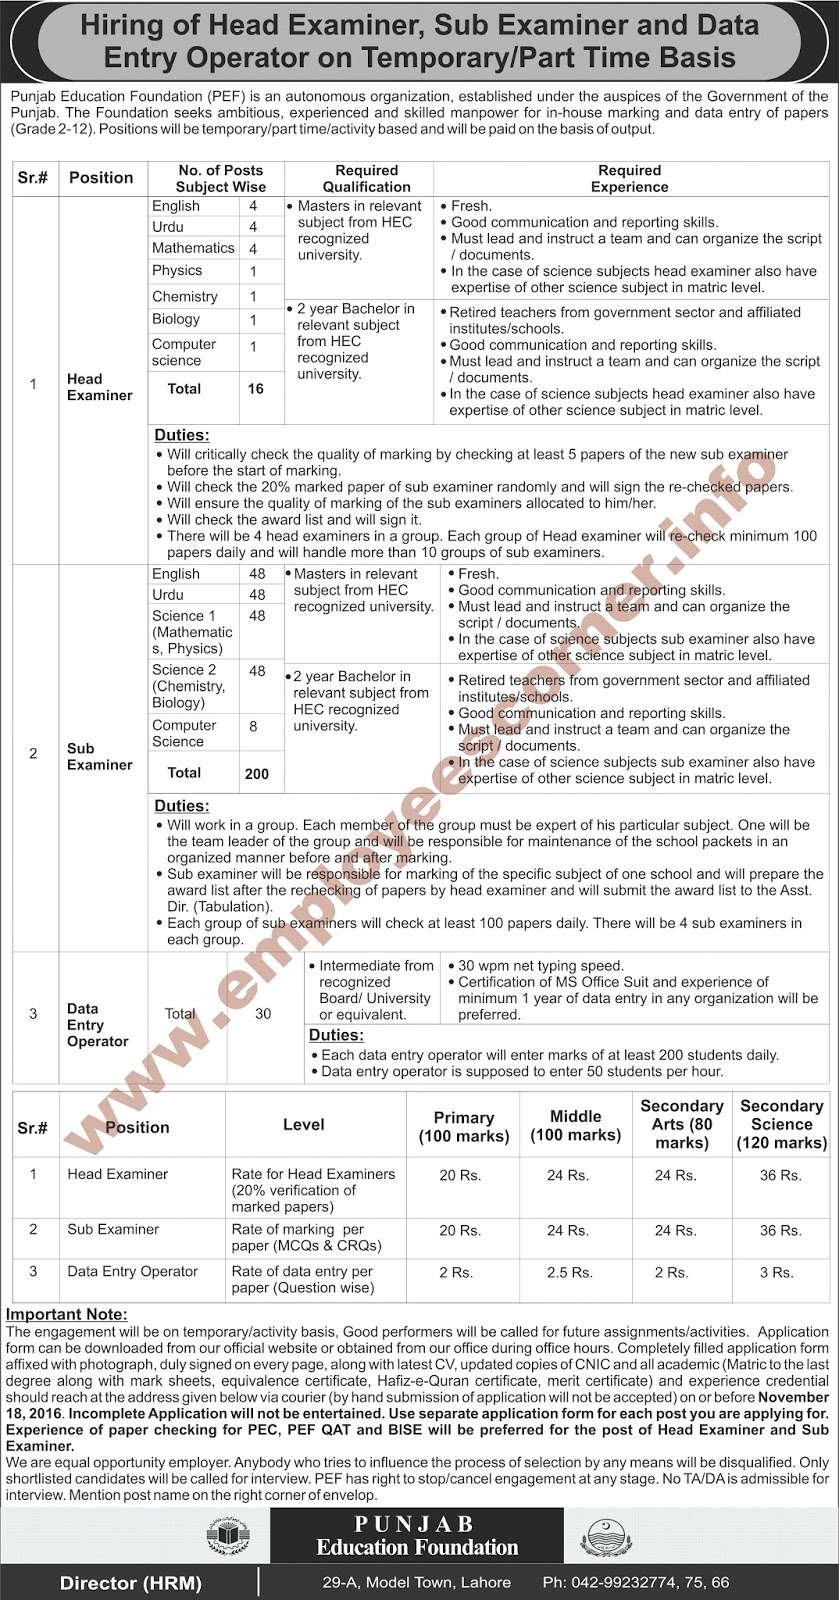 Examiner Jobs In PEF Punjab